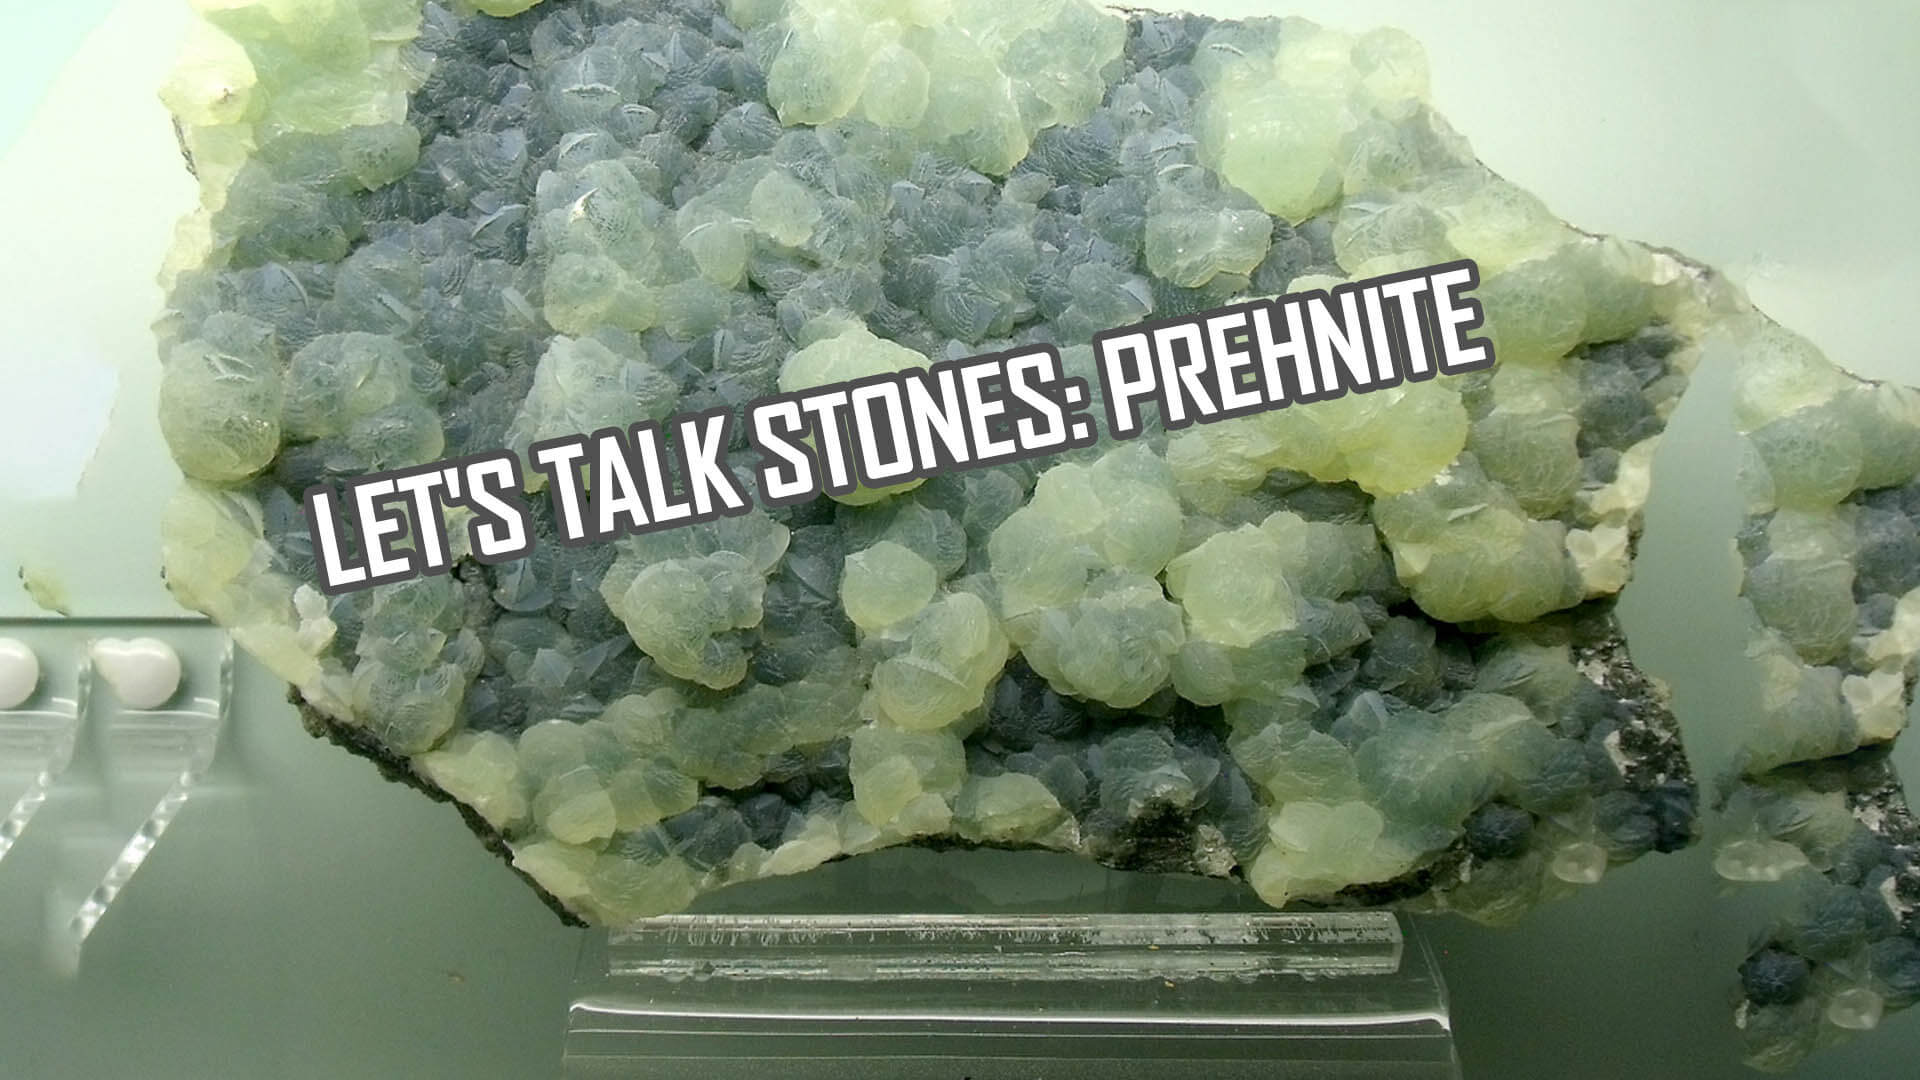 Let's Talk Stones: Wholesale Details for Prehnite Beads